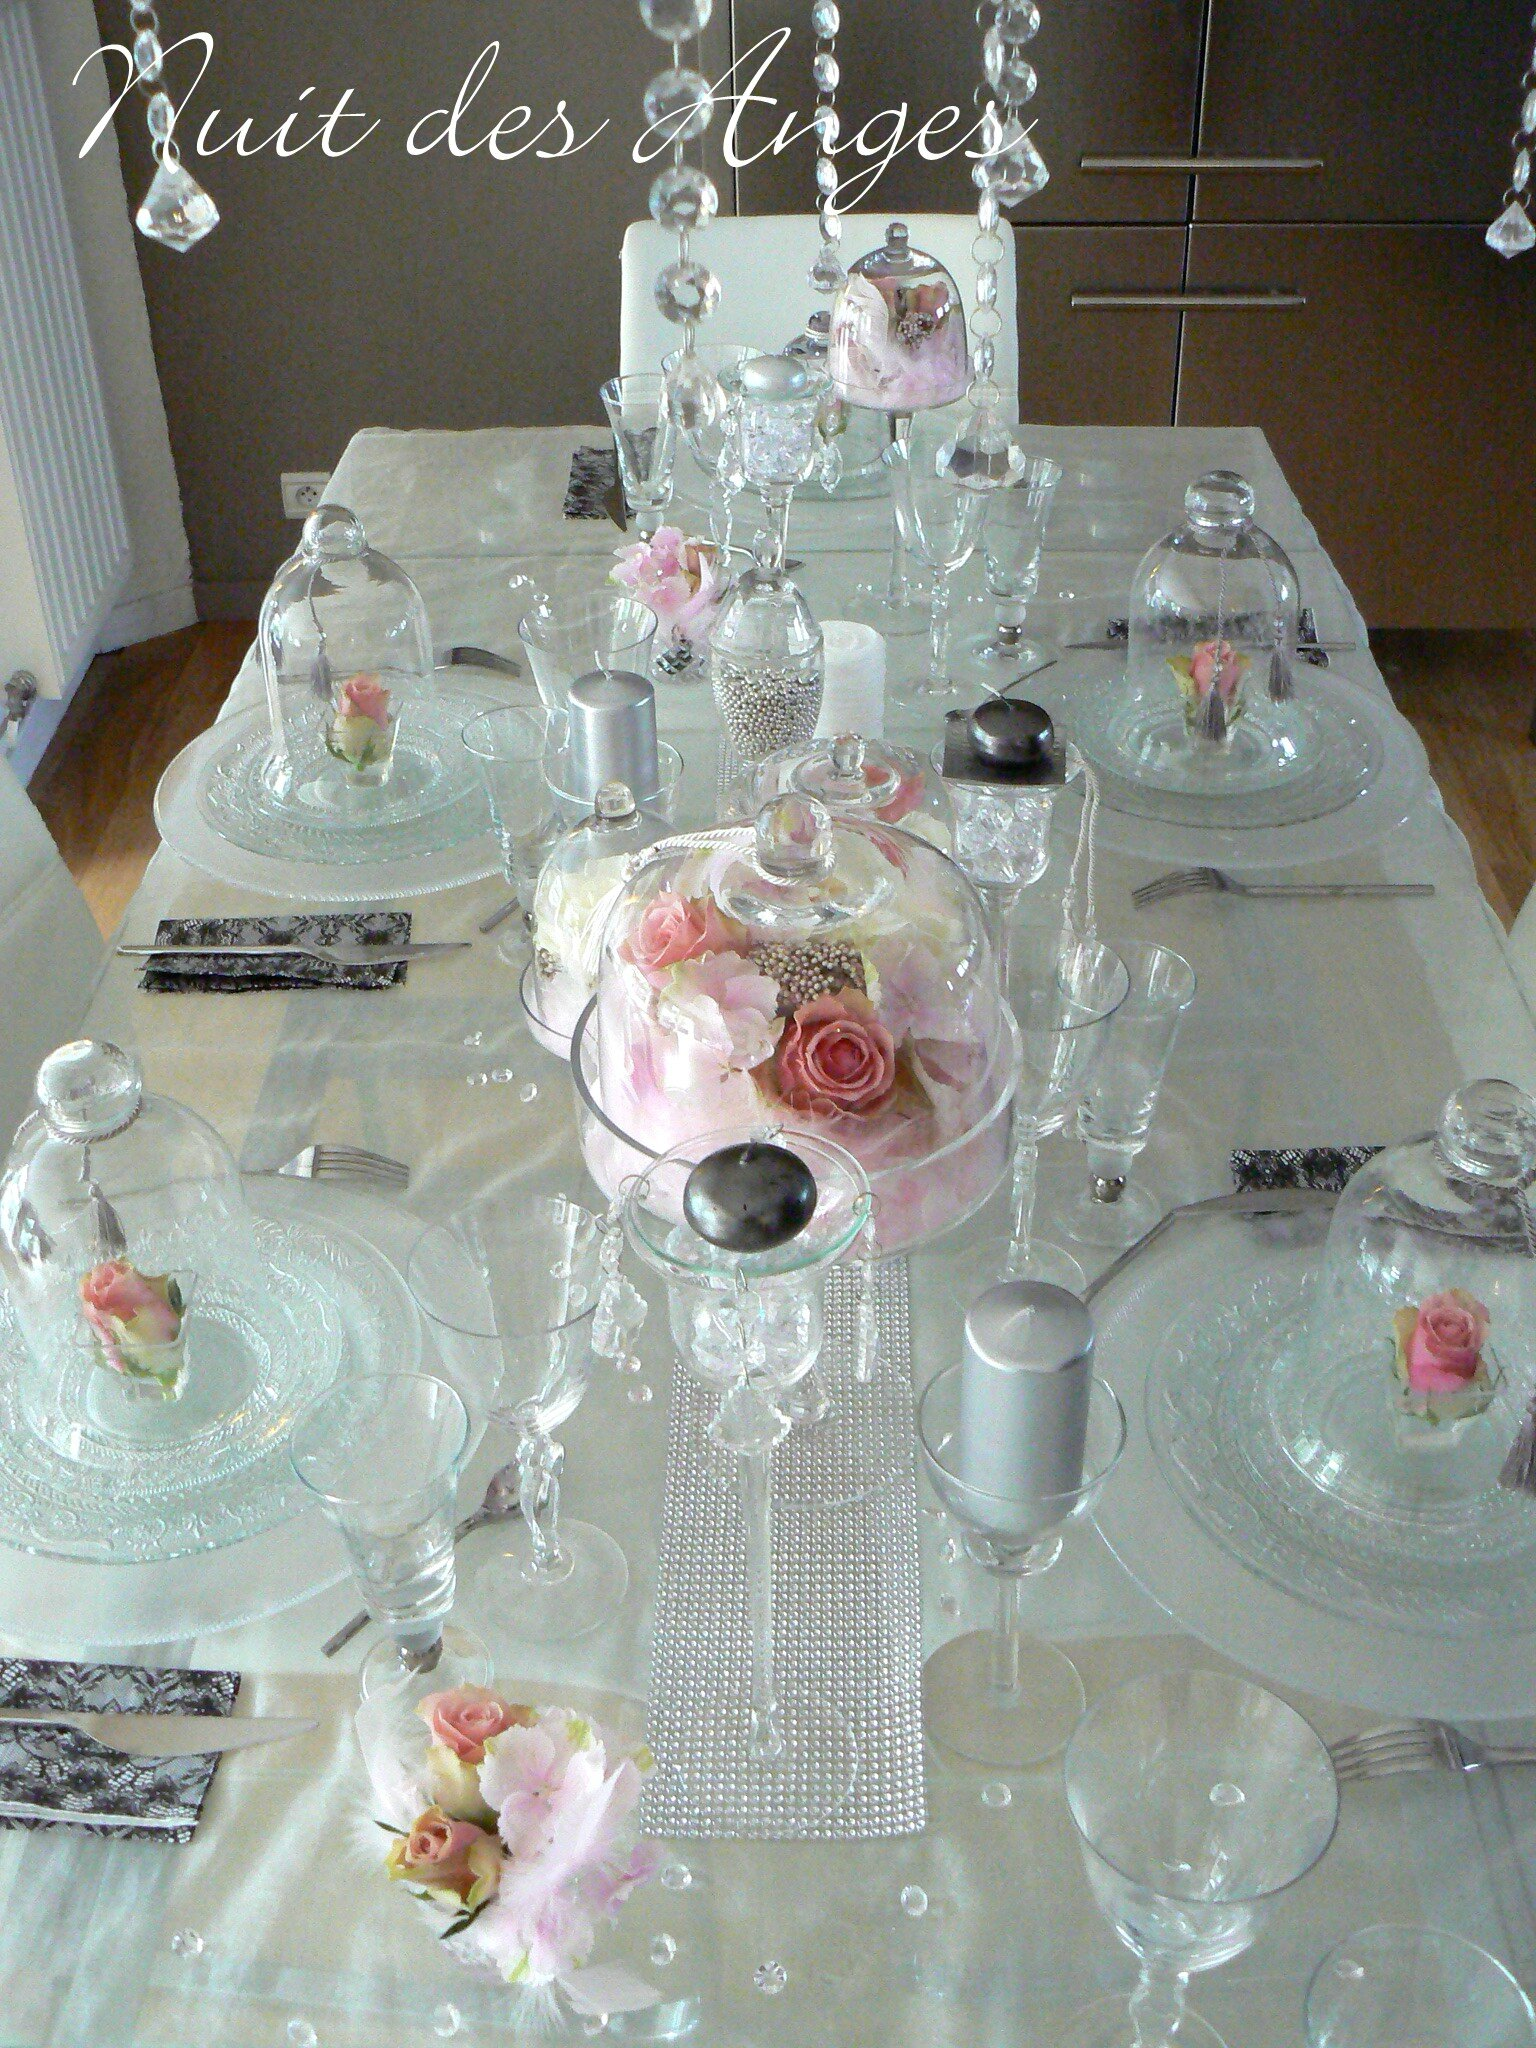 Nuit des anges d coratrice de mariage d coration de table for Deco table blanc et gris